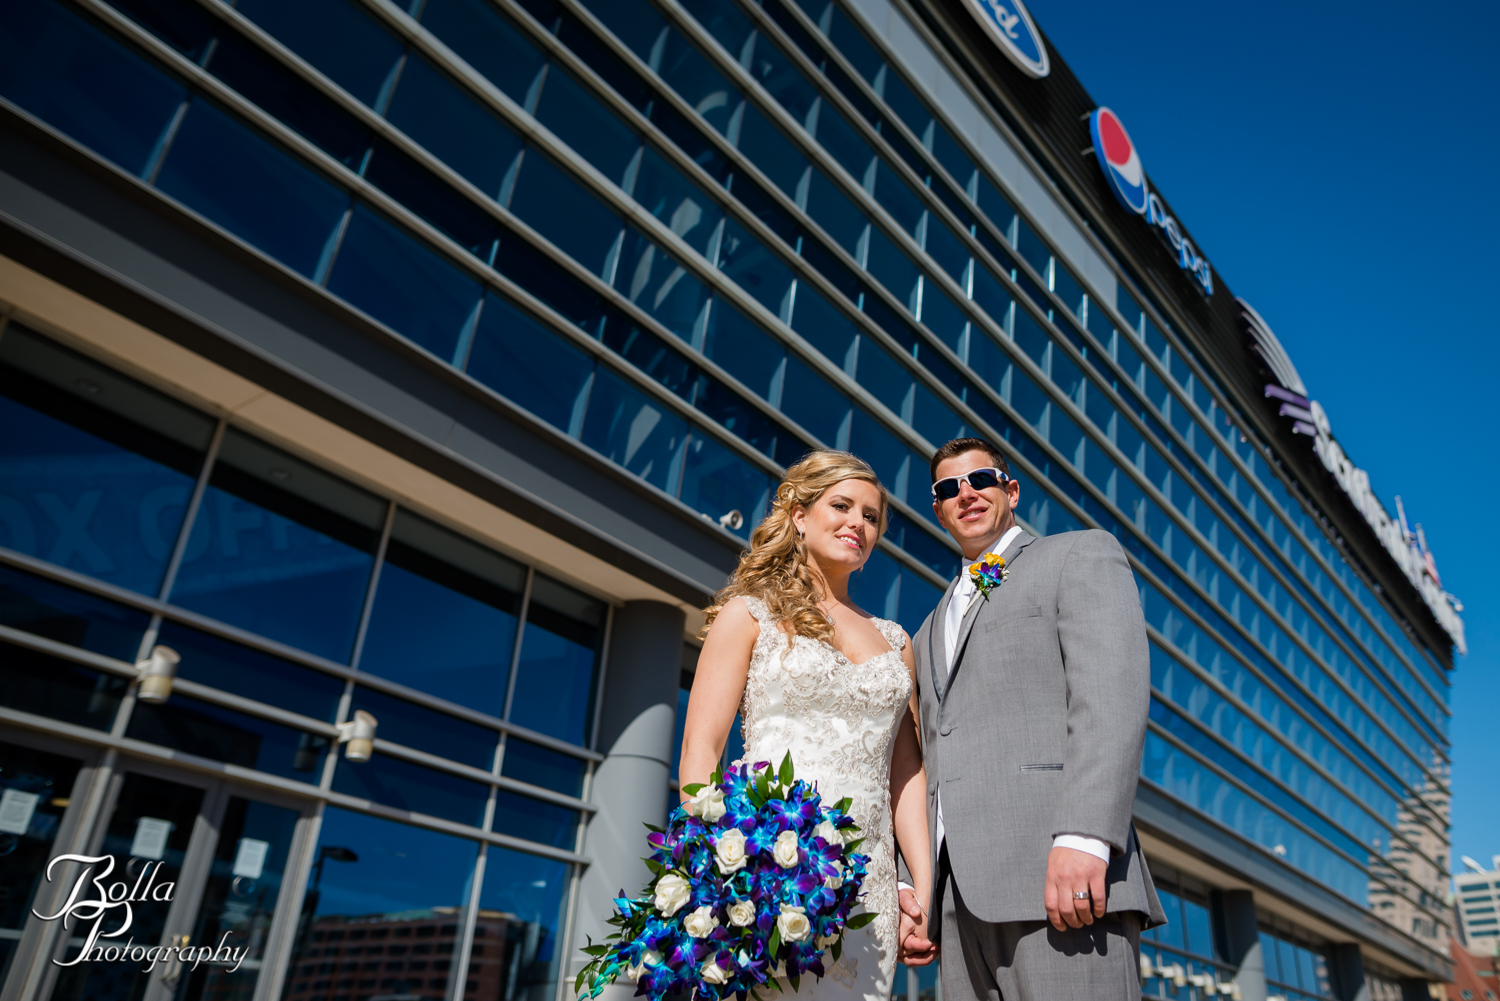 Bolla_Photography_St_Louis_wedding_photographer_Morgando_Blues_hockey_Botanical_Gardens_spring-0286.jpg